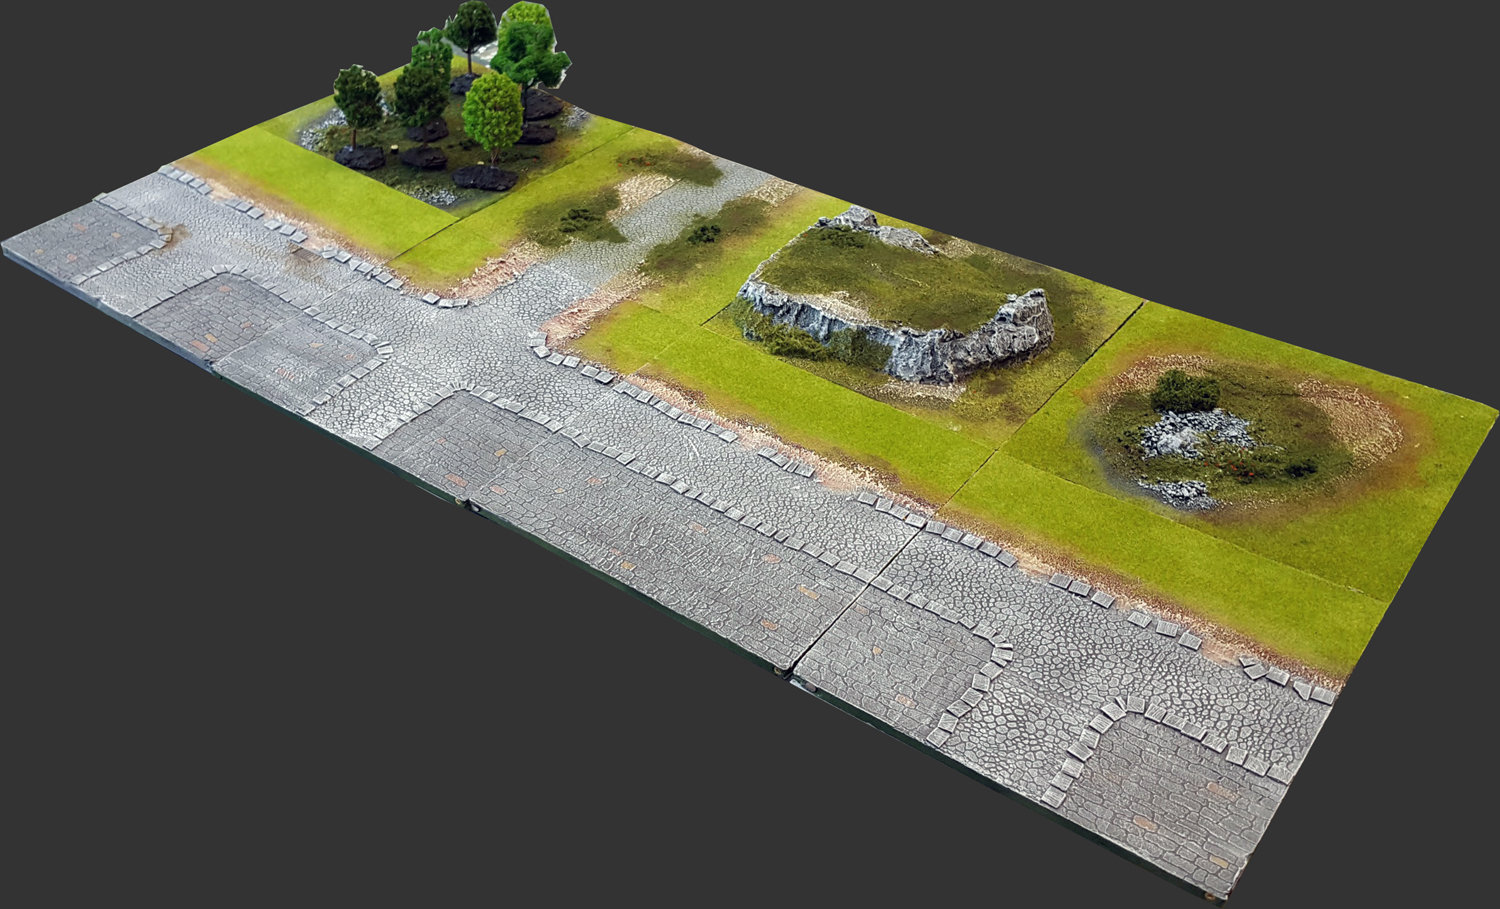 Outskirts Set 4'x2' Urban Extension